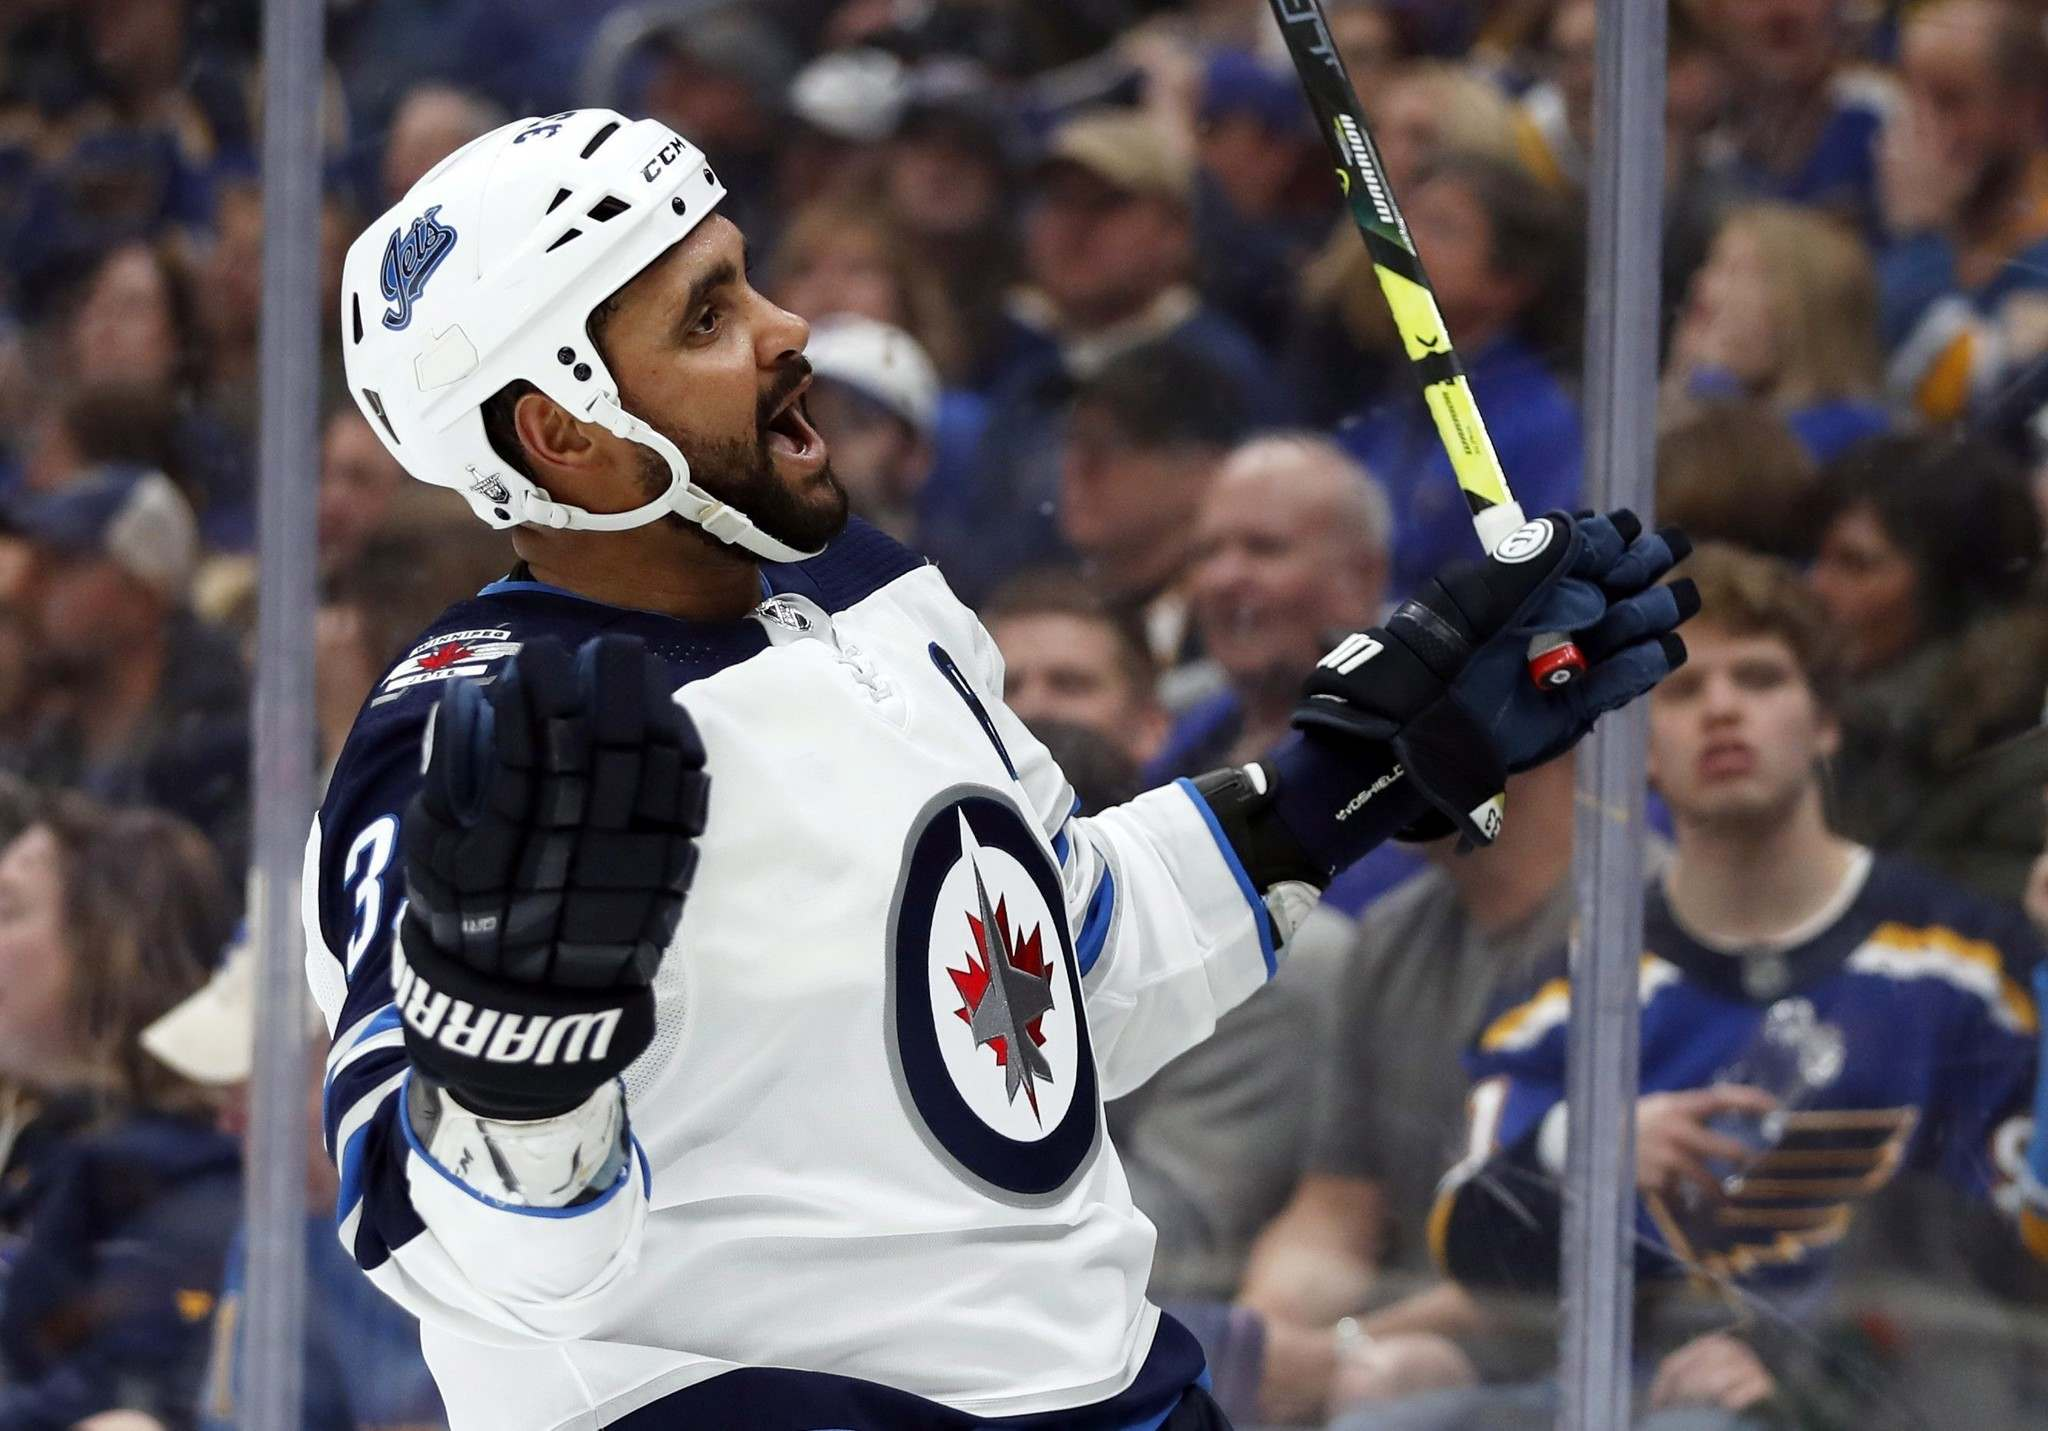 THE CANADIAN PRESS/AP/Jeff Roberson</p><p>Dustin Byfuglien was suspended by the Winnipeg Jets after he failed to report to training camp.</p>